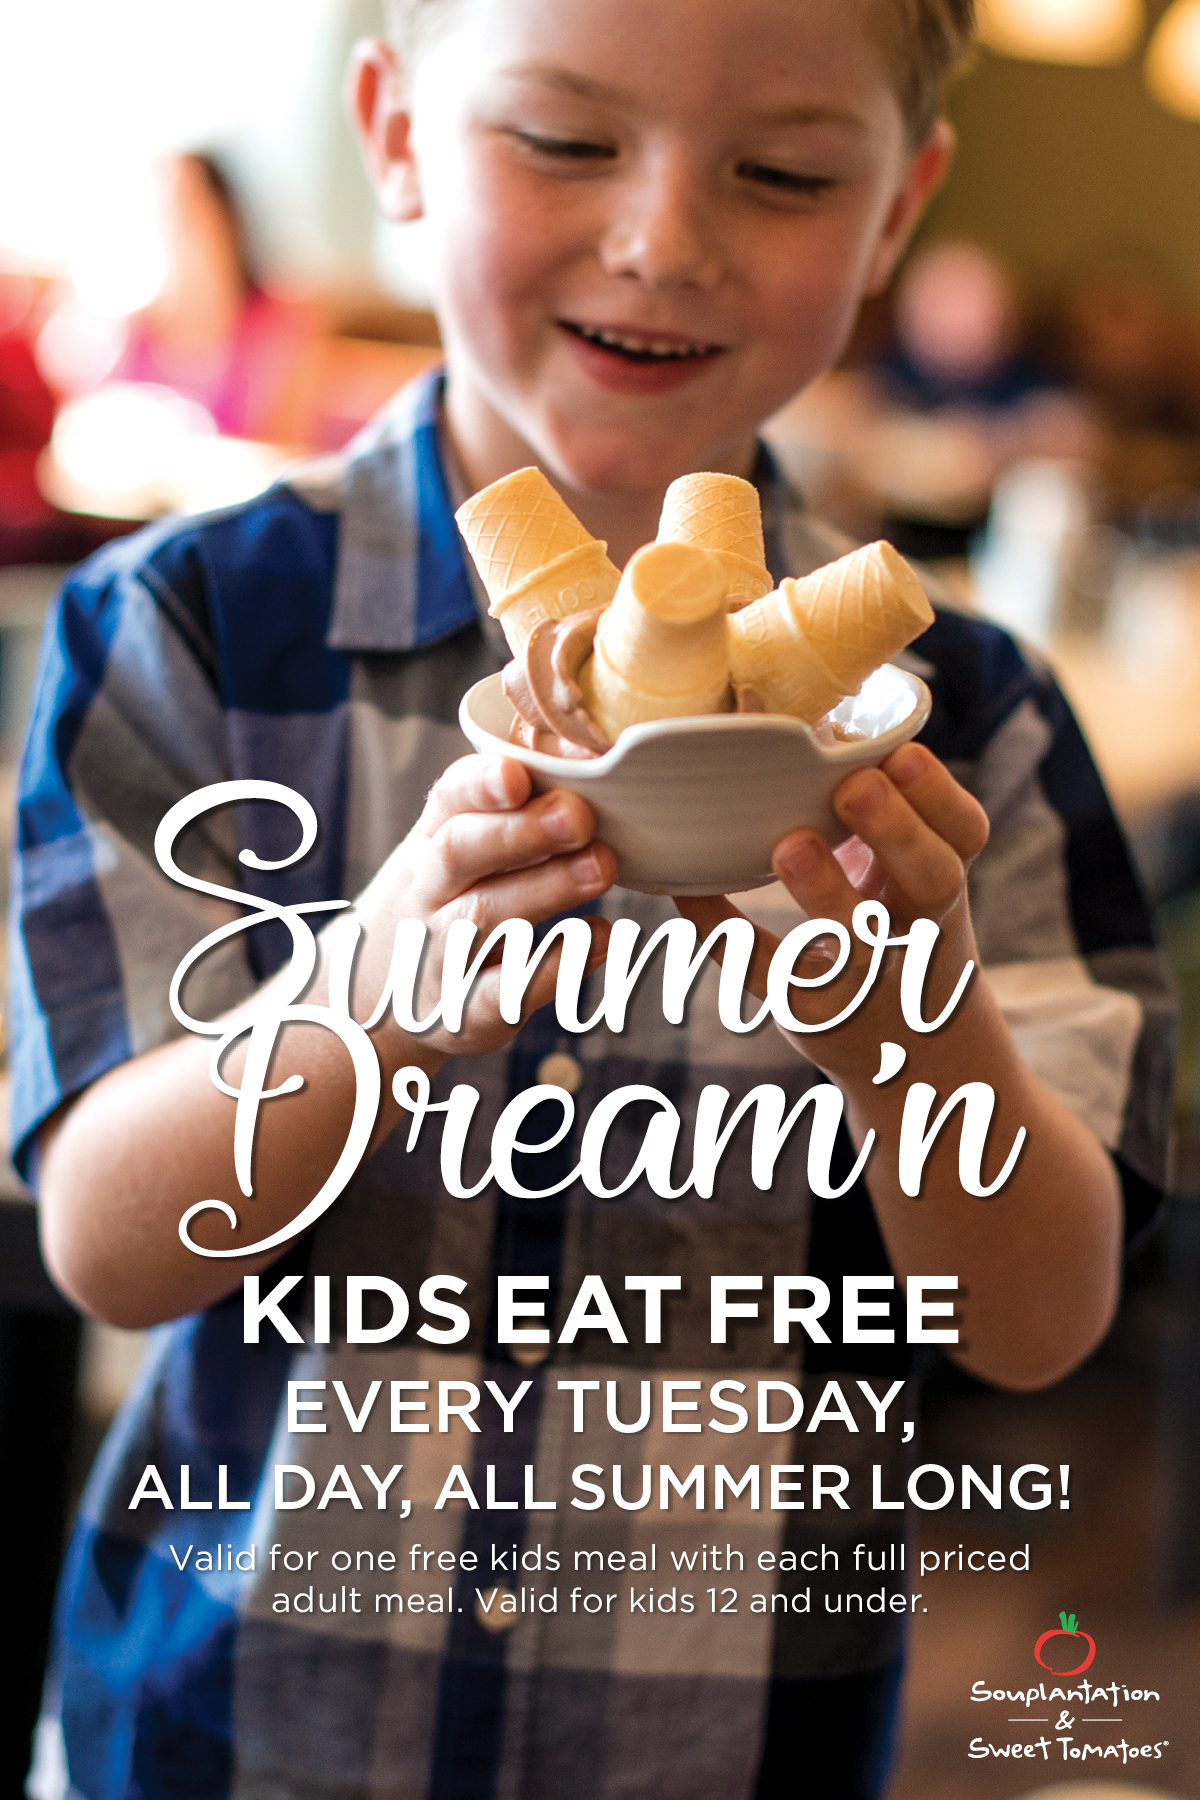 Kids Eat Free on Tuesdays all Summer Long at Sweet Tomatoes #Free